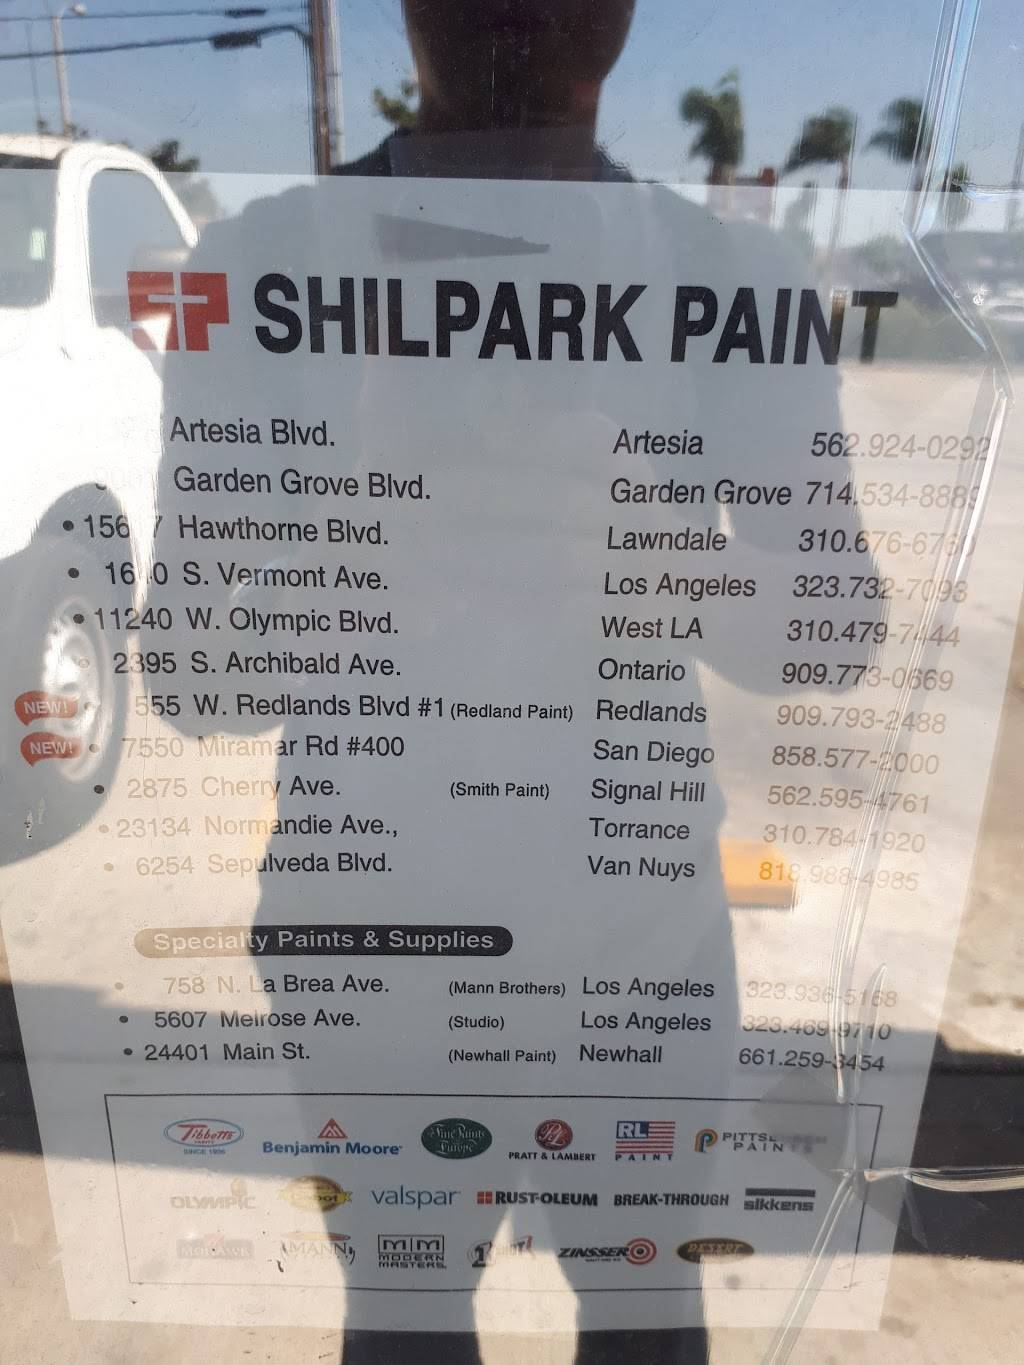 Shilpark Paint - Garden Grove - home goods store  | Photo 9 of 9 | Address: 9001 Garden Grove Blvd, Garden Grove, CA 92844, USA | Phone: (714) 534-8889